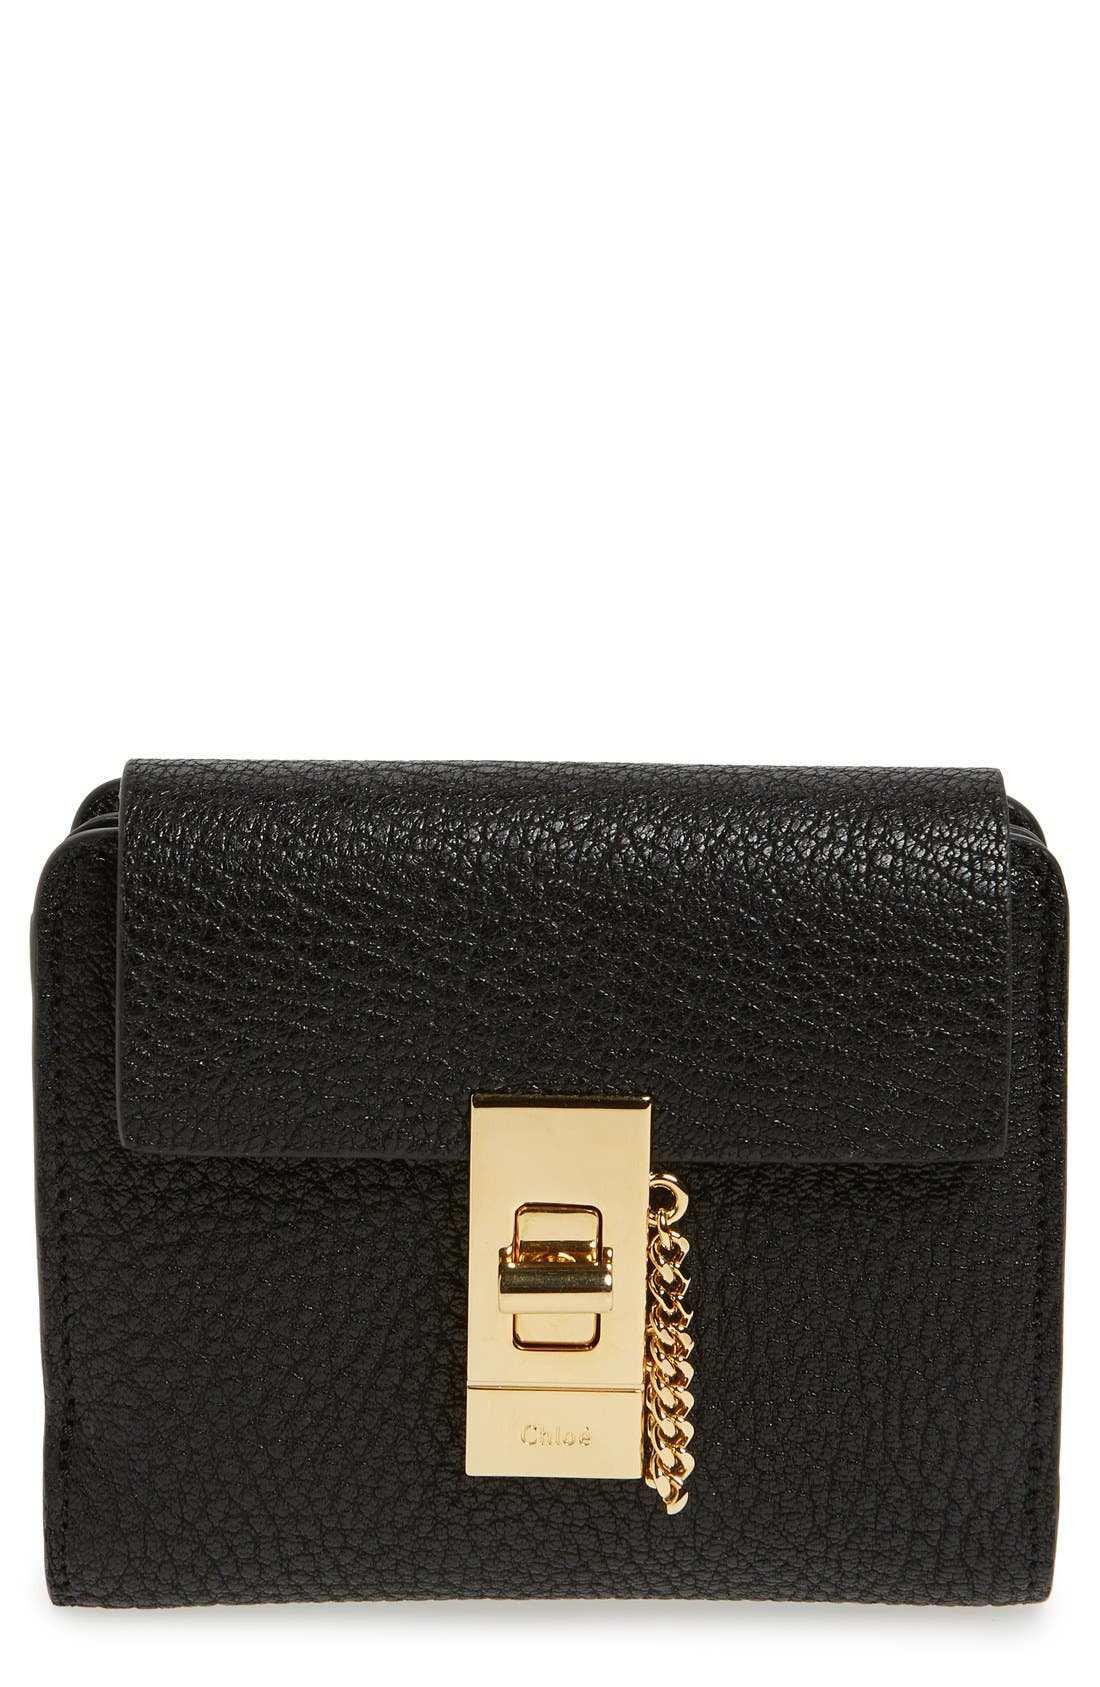 Chloé 'Drew' Calfskin Leather Square Wallet